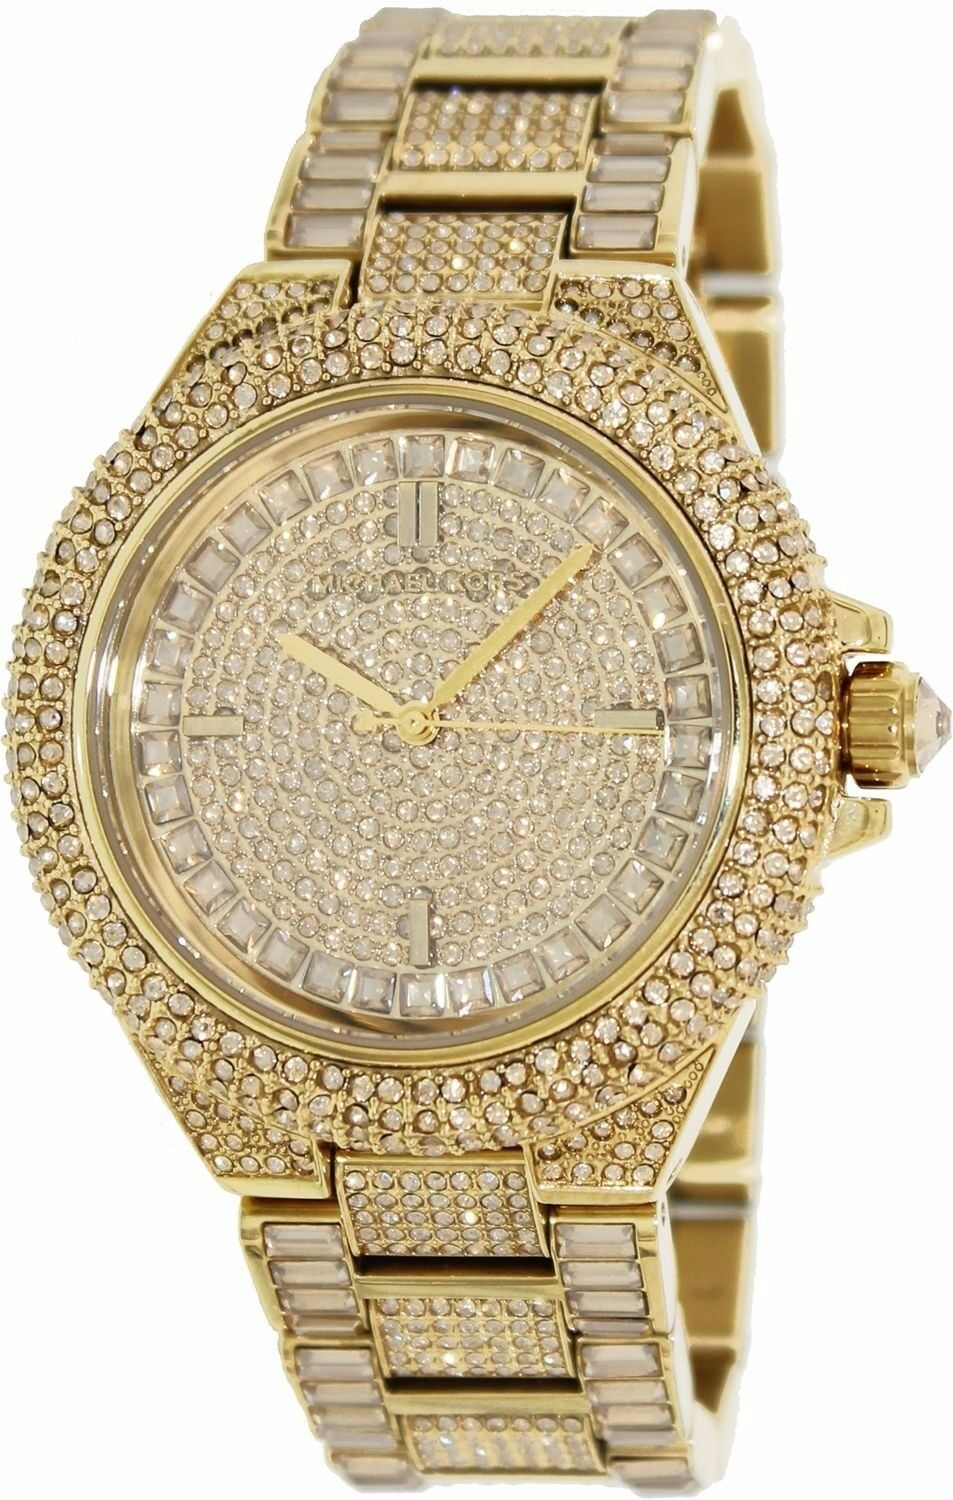 Michael Kors - Michael Kors MK5720 Women's Camille Gold Stainless-Steel Quartz Watch